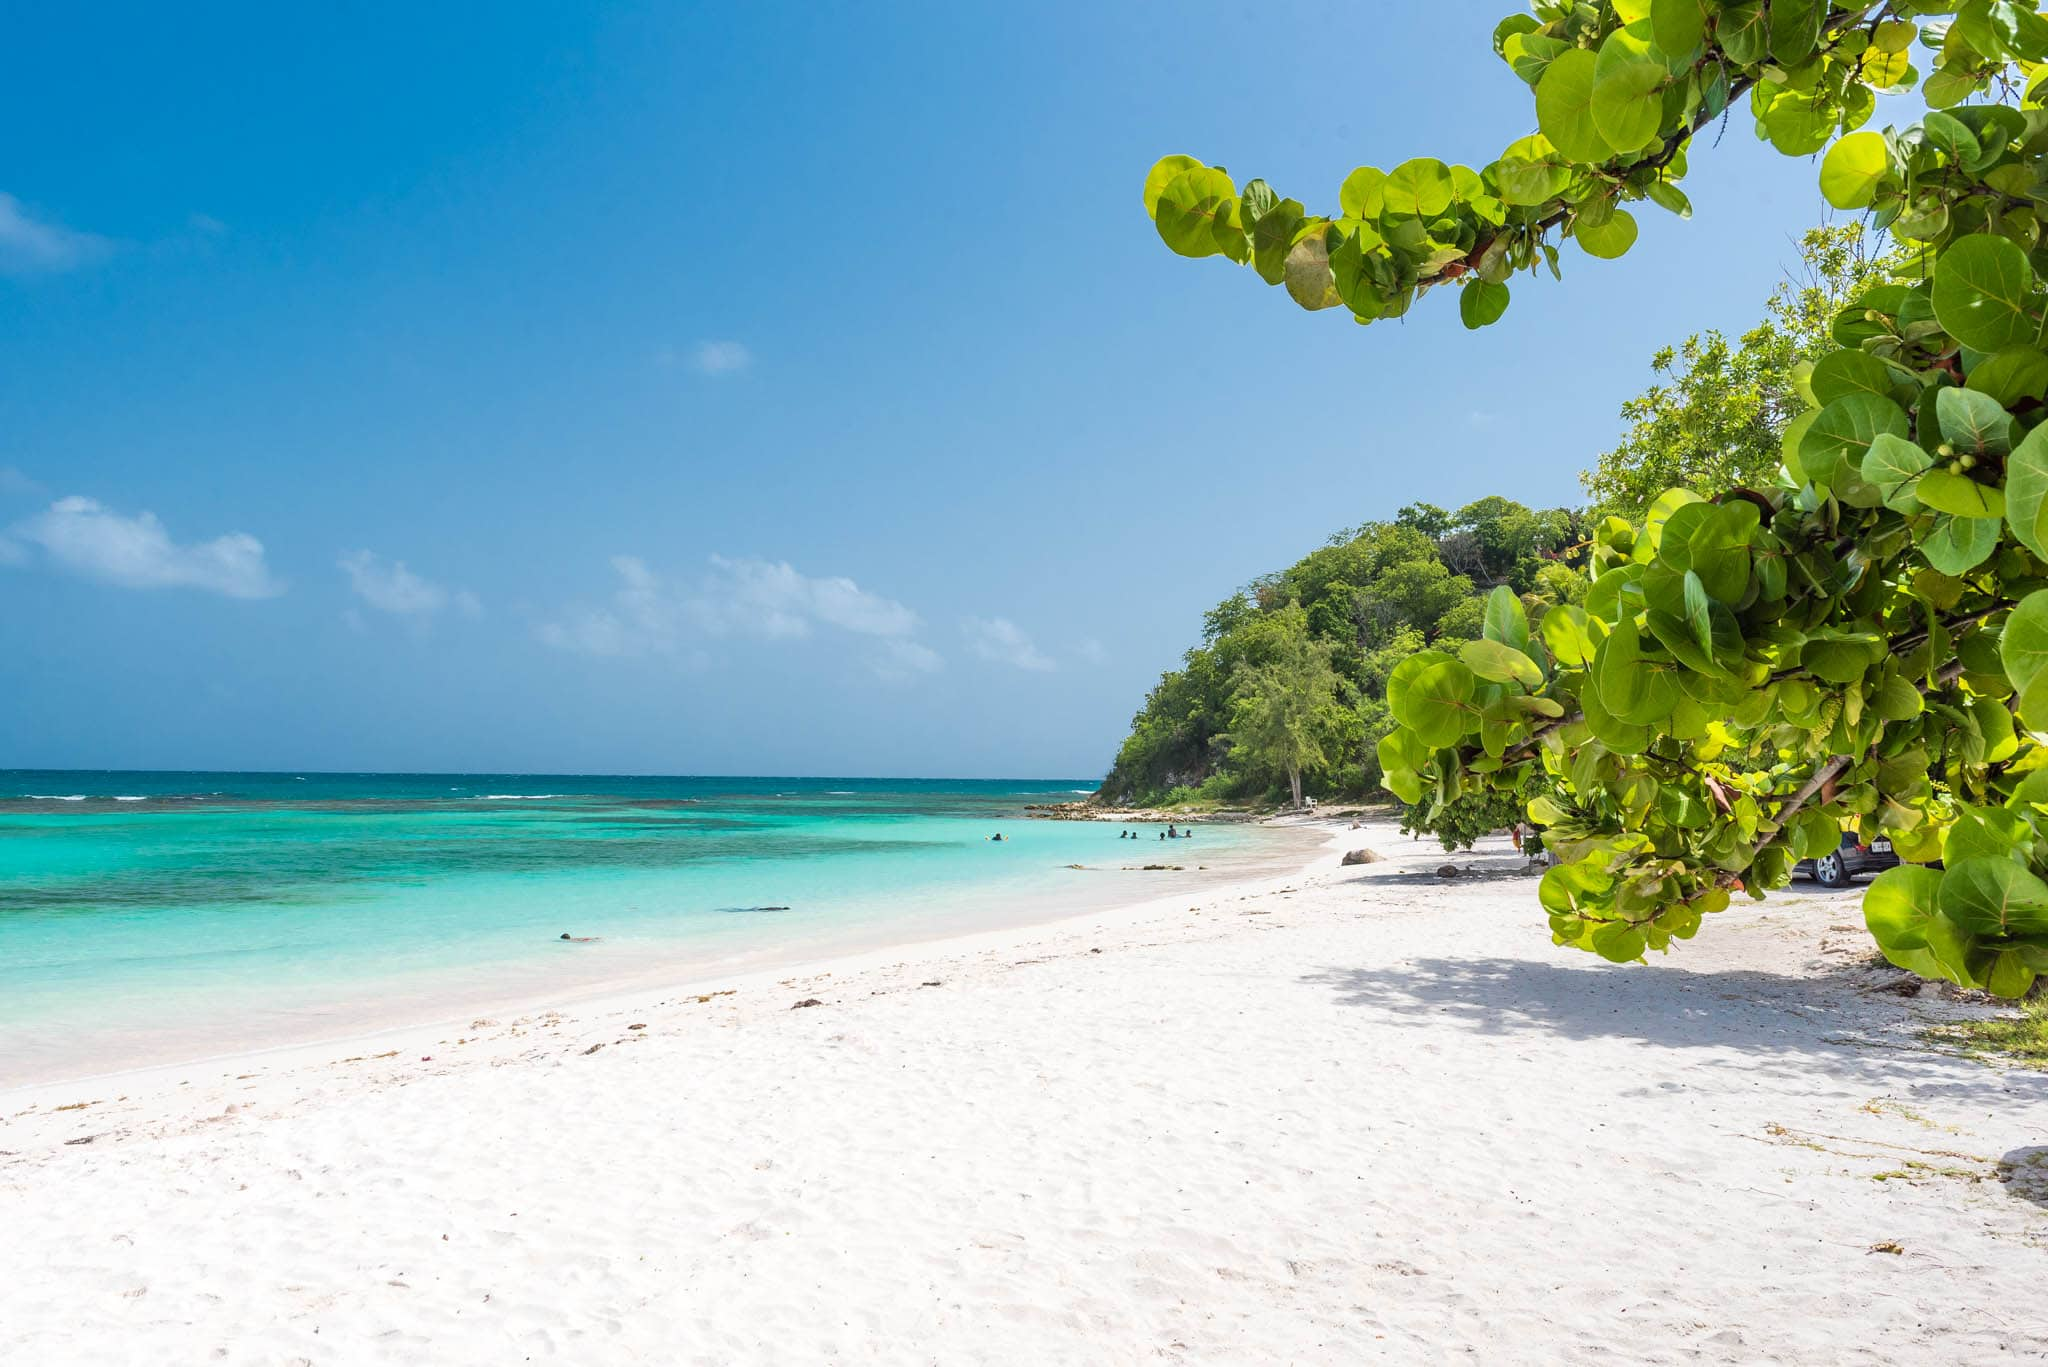 Long Bay Beach is just a short walk away for those looking for a beach off property.